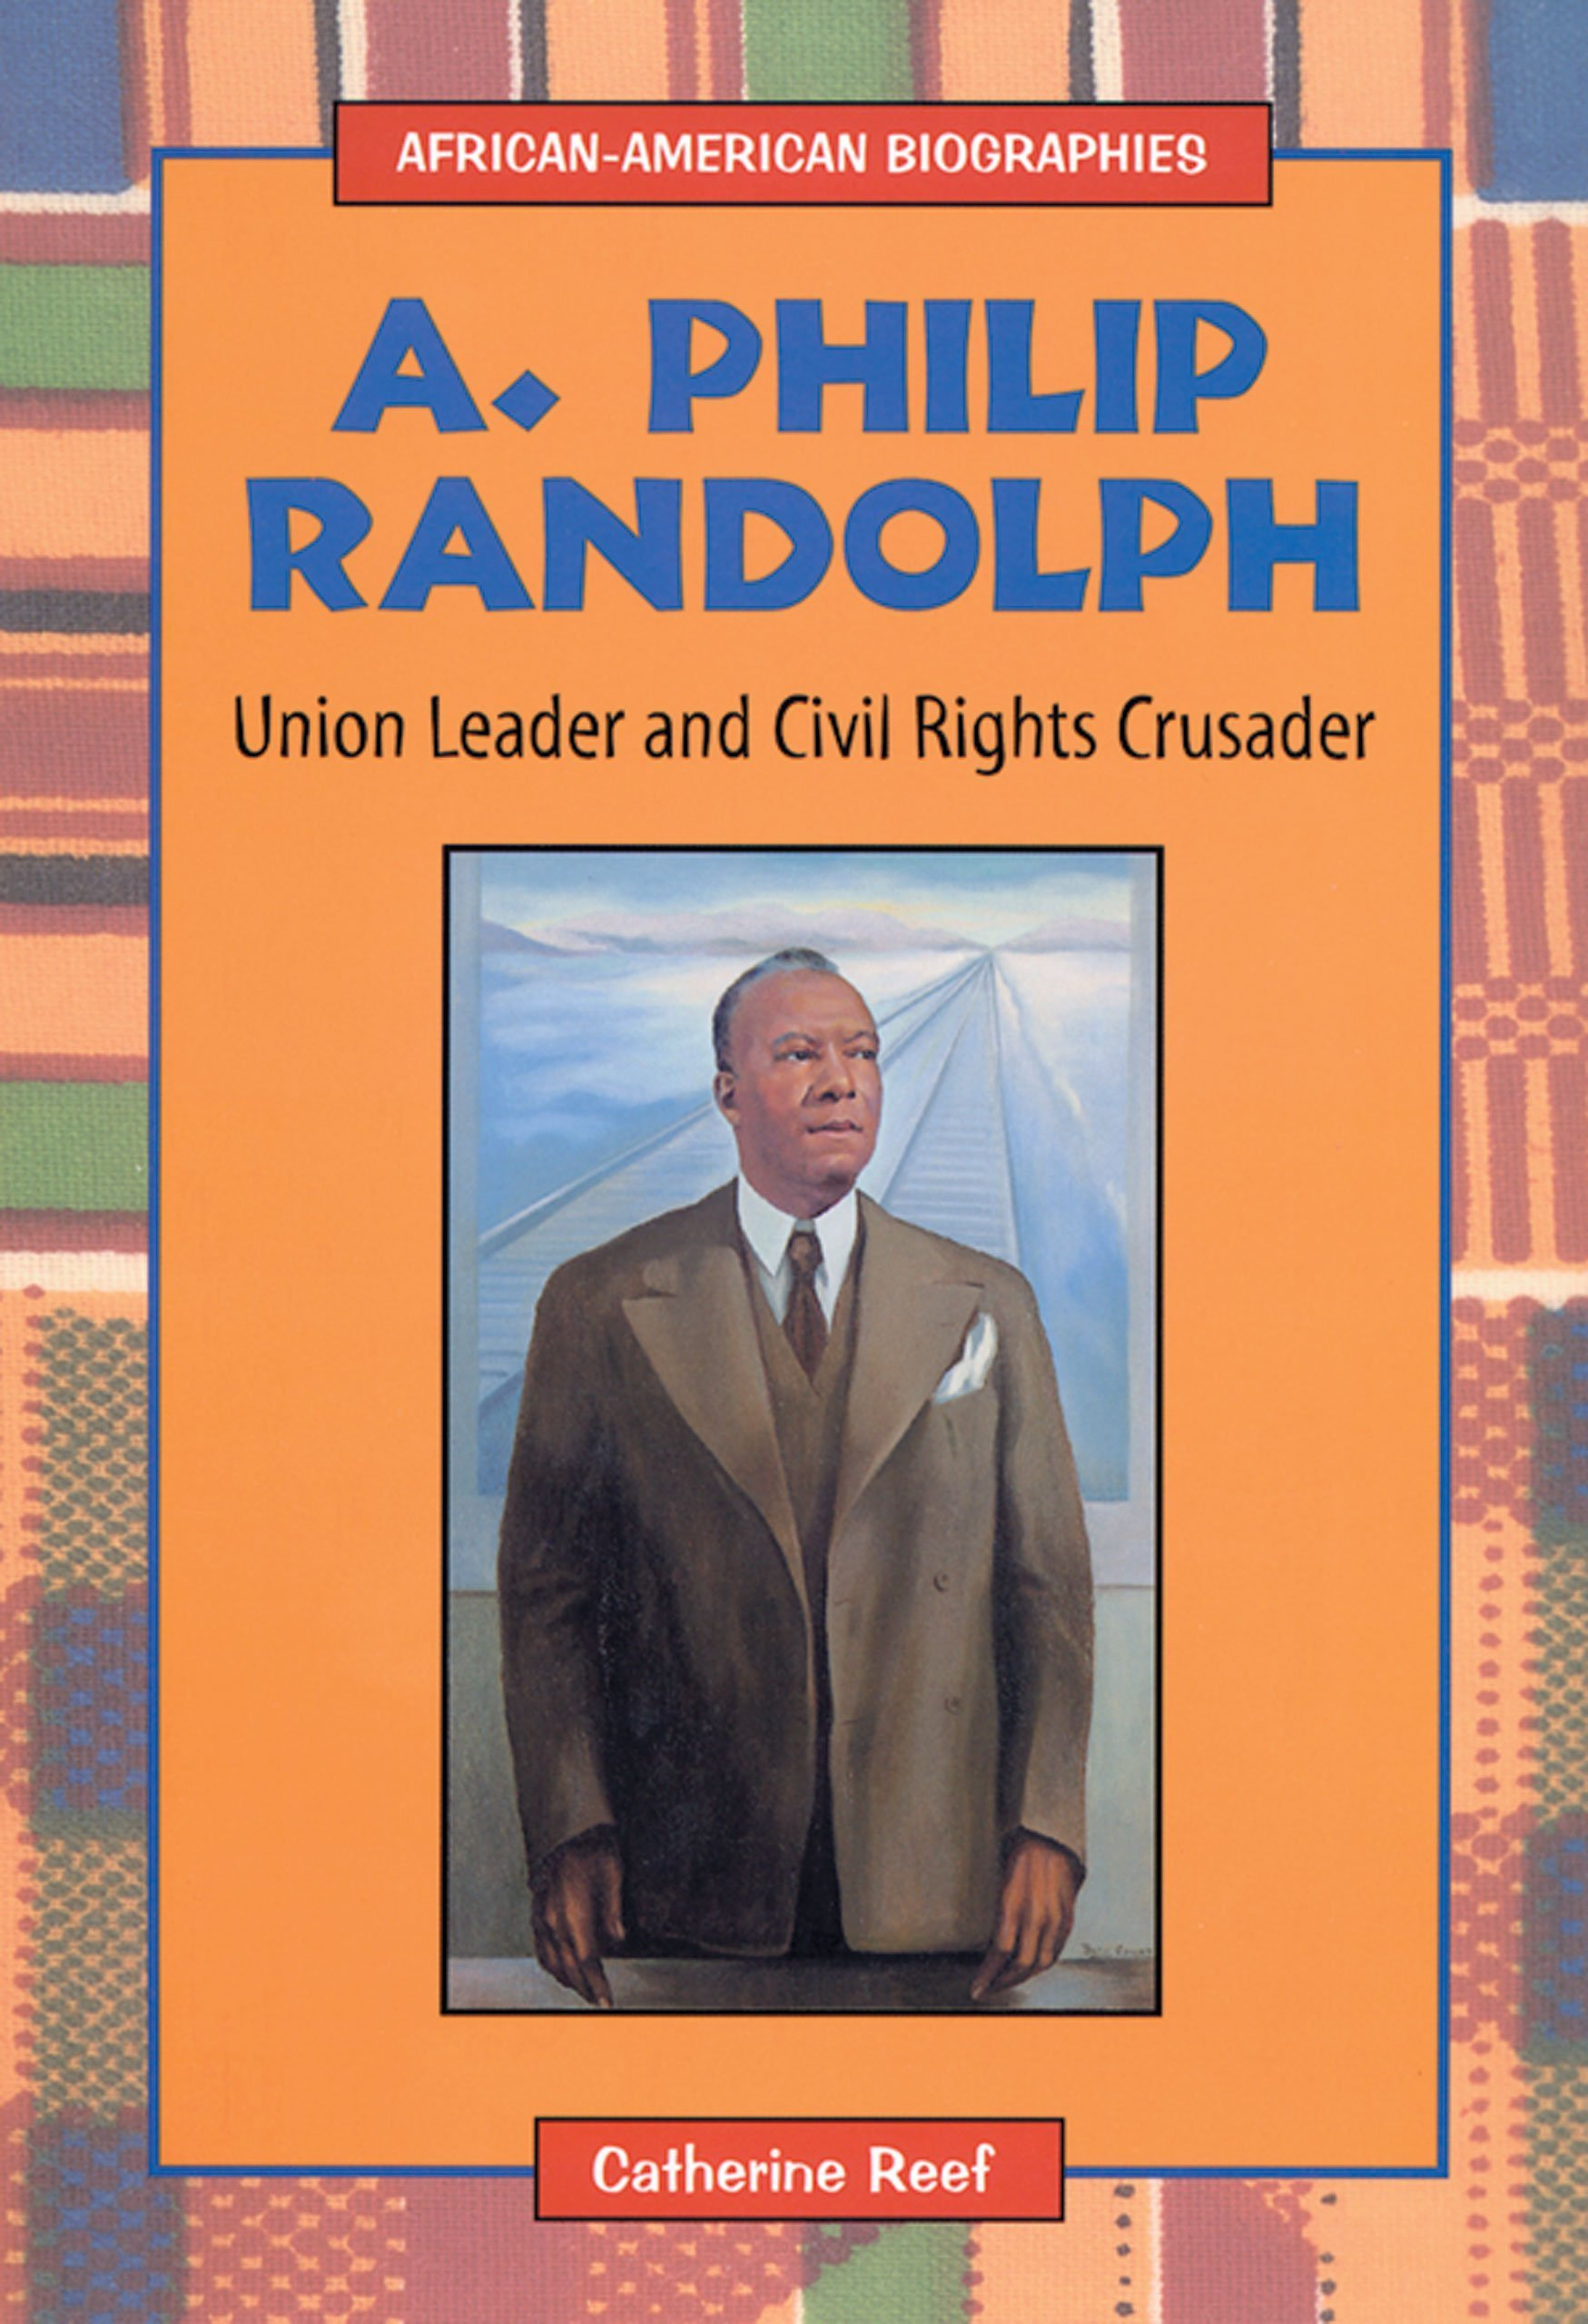 A. Philip Randolph: Union Leader and Civil Rights Crusader (African-American Biographies) pdf epub